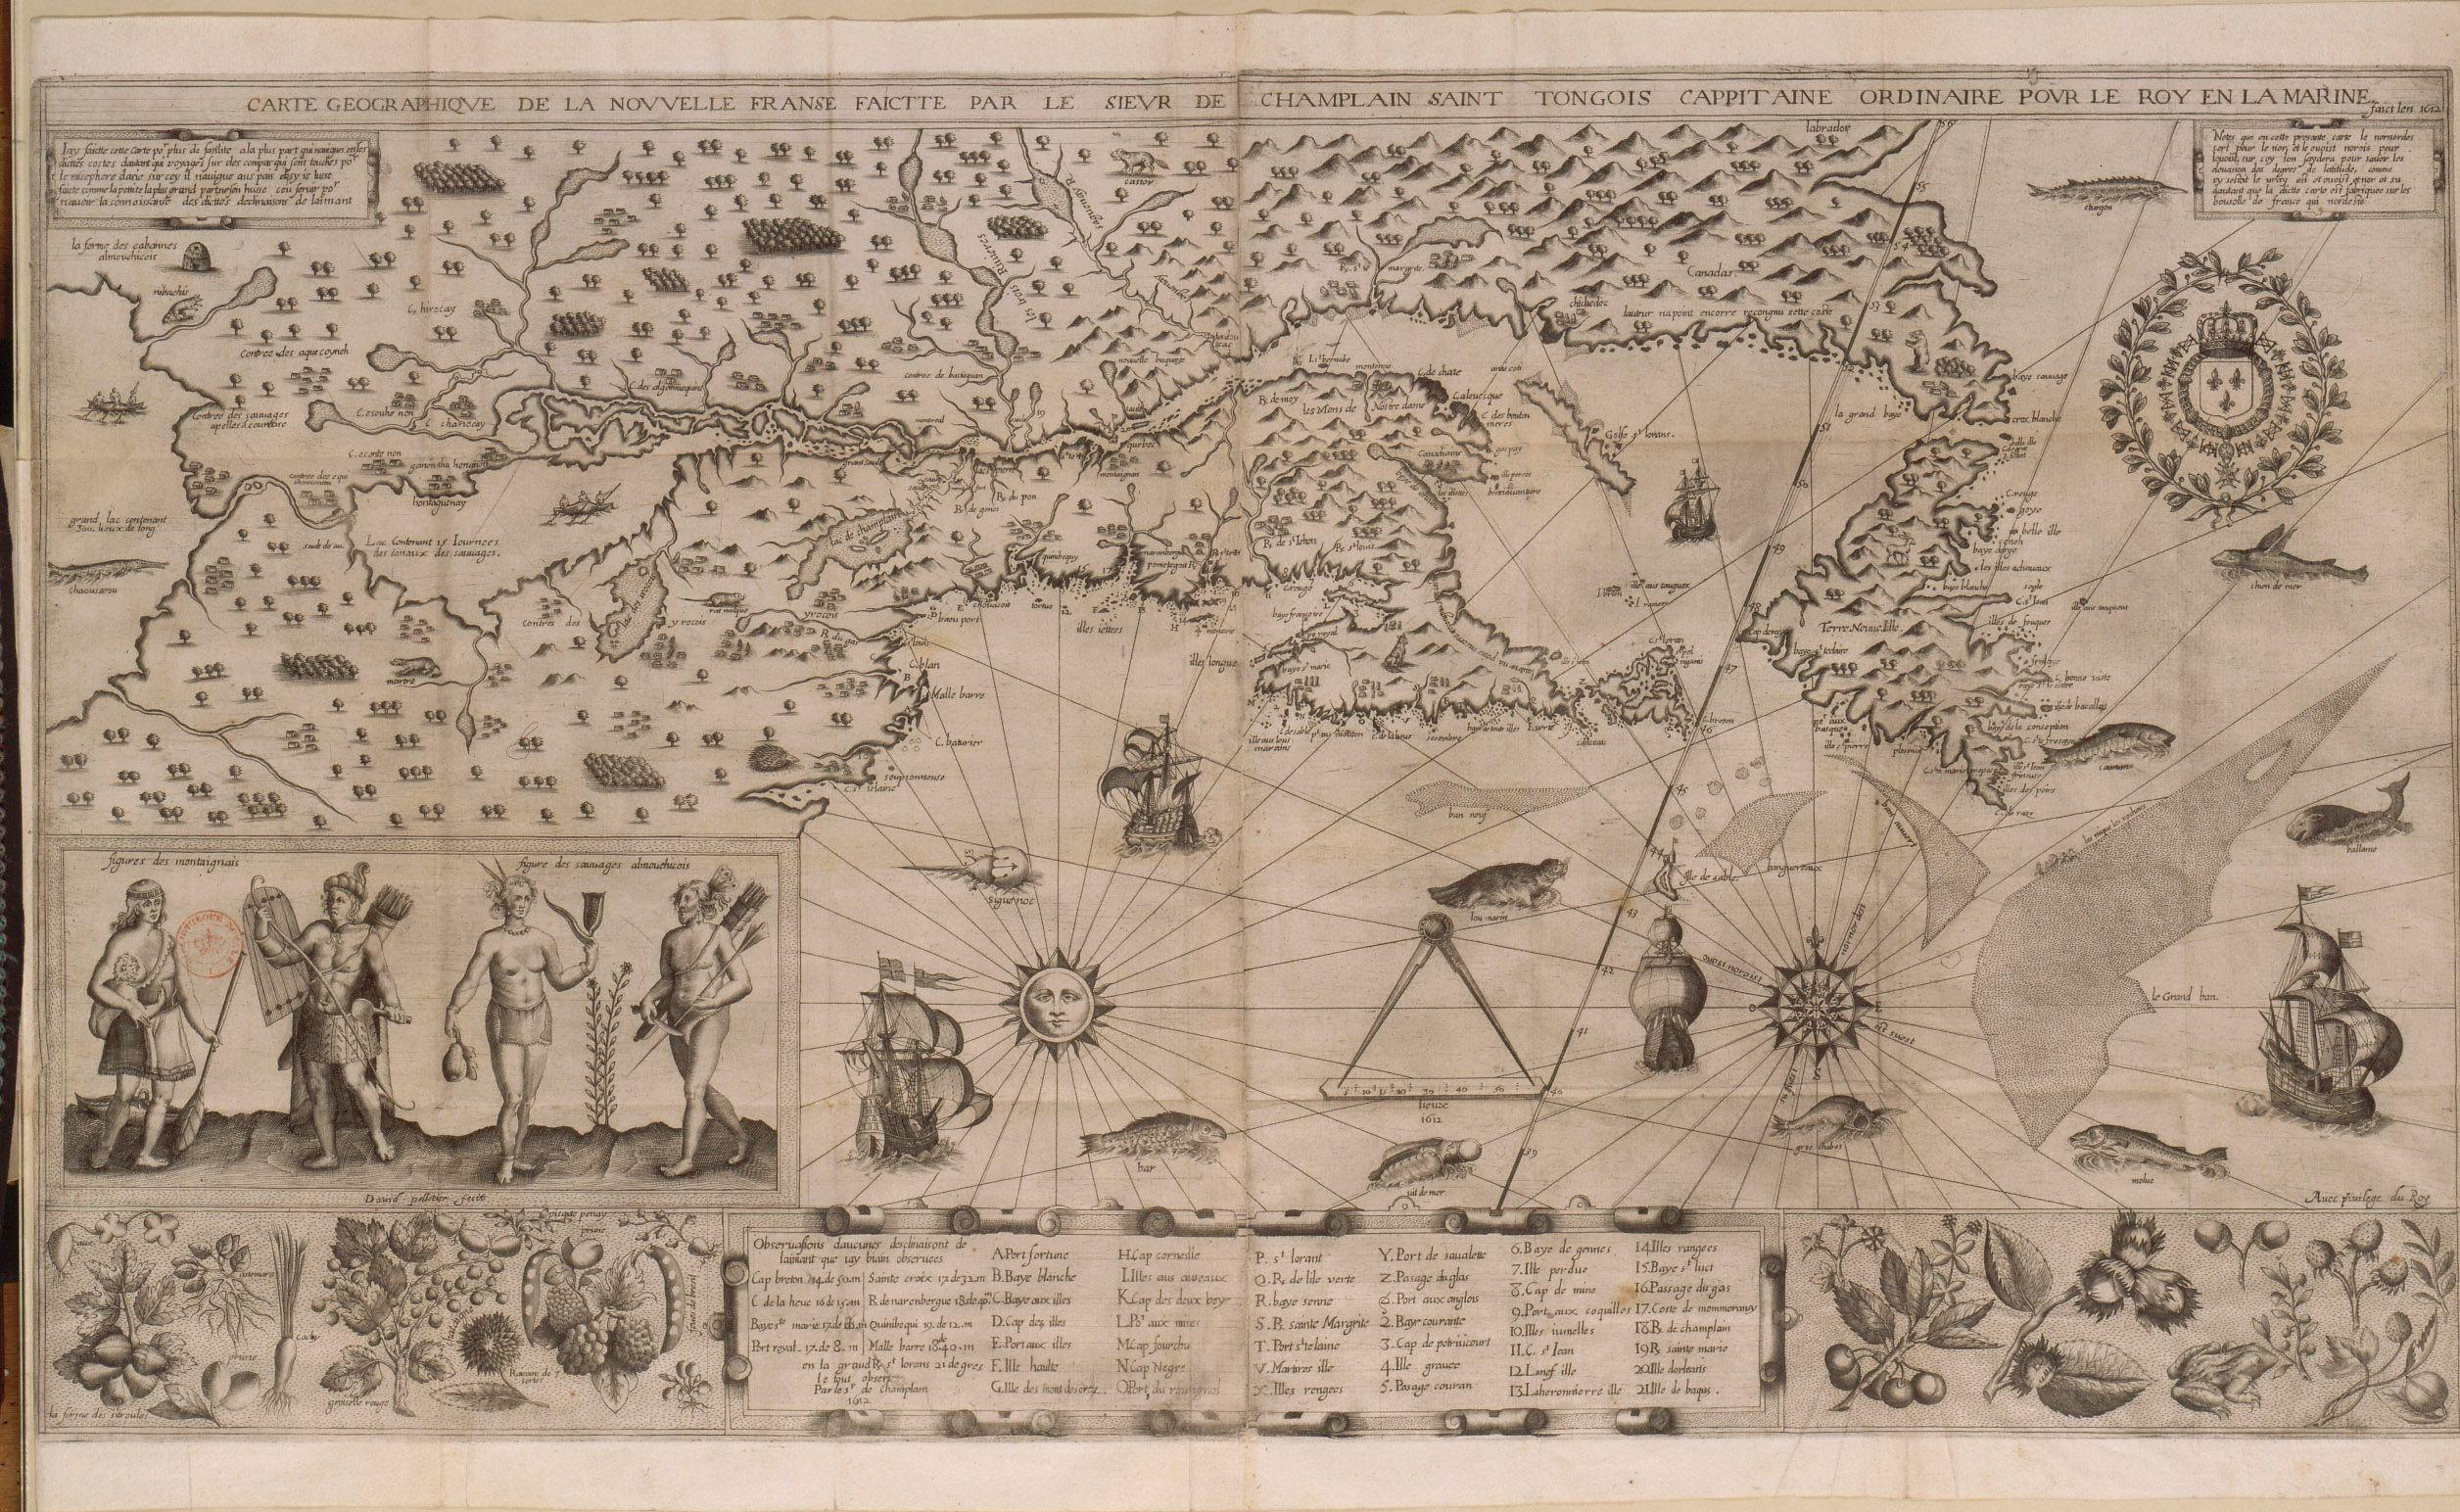 files/images/champlain_map_wikimedia.jpg